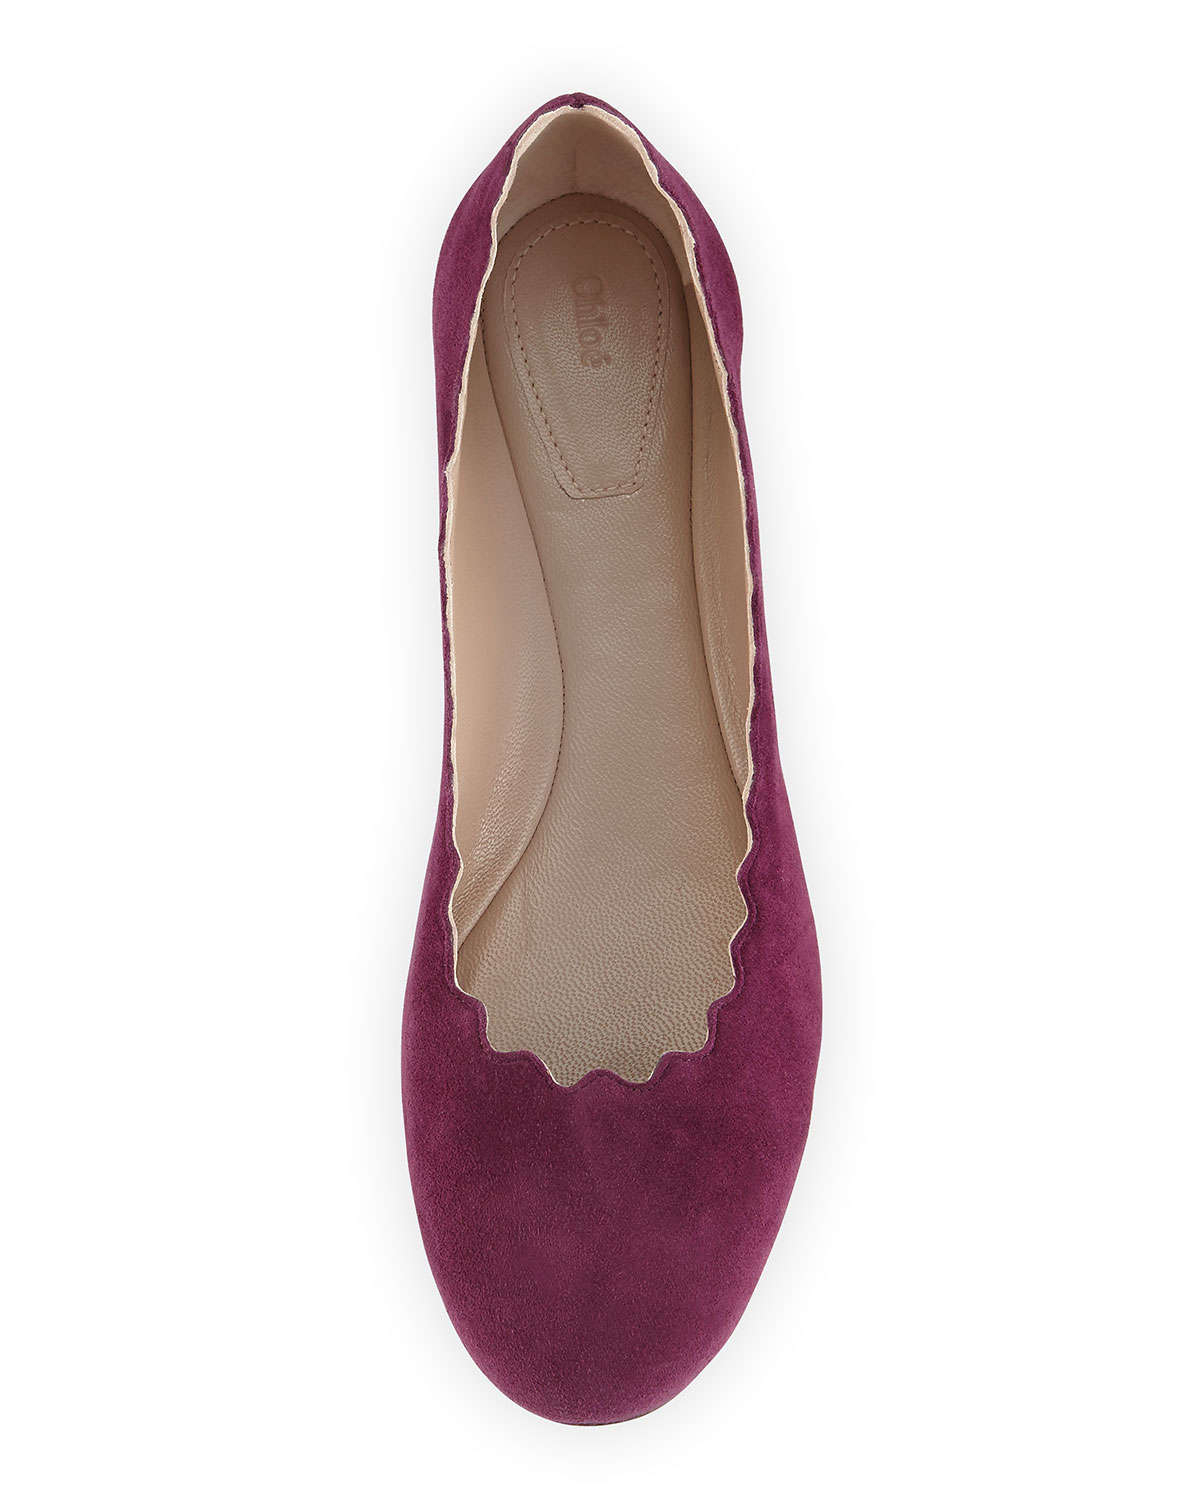 9528eb986 Chloé Scalloped Suede Ballet Flats in Purple - Lyst